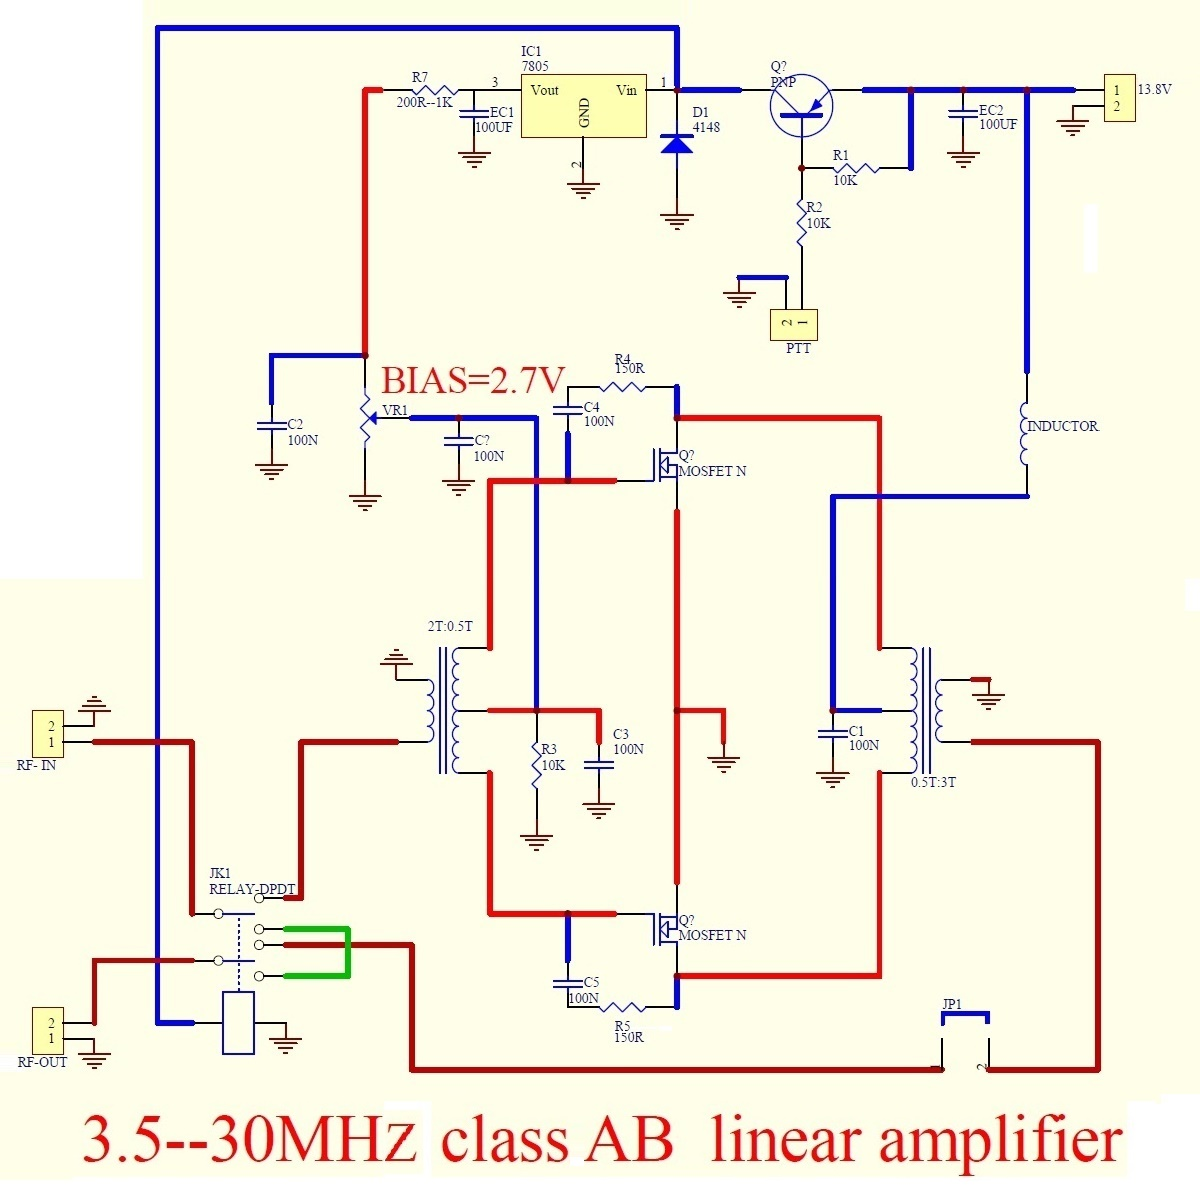 Make a 100 Watt linear amplifier from a kit - Amateur radio tips and